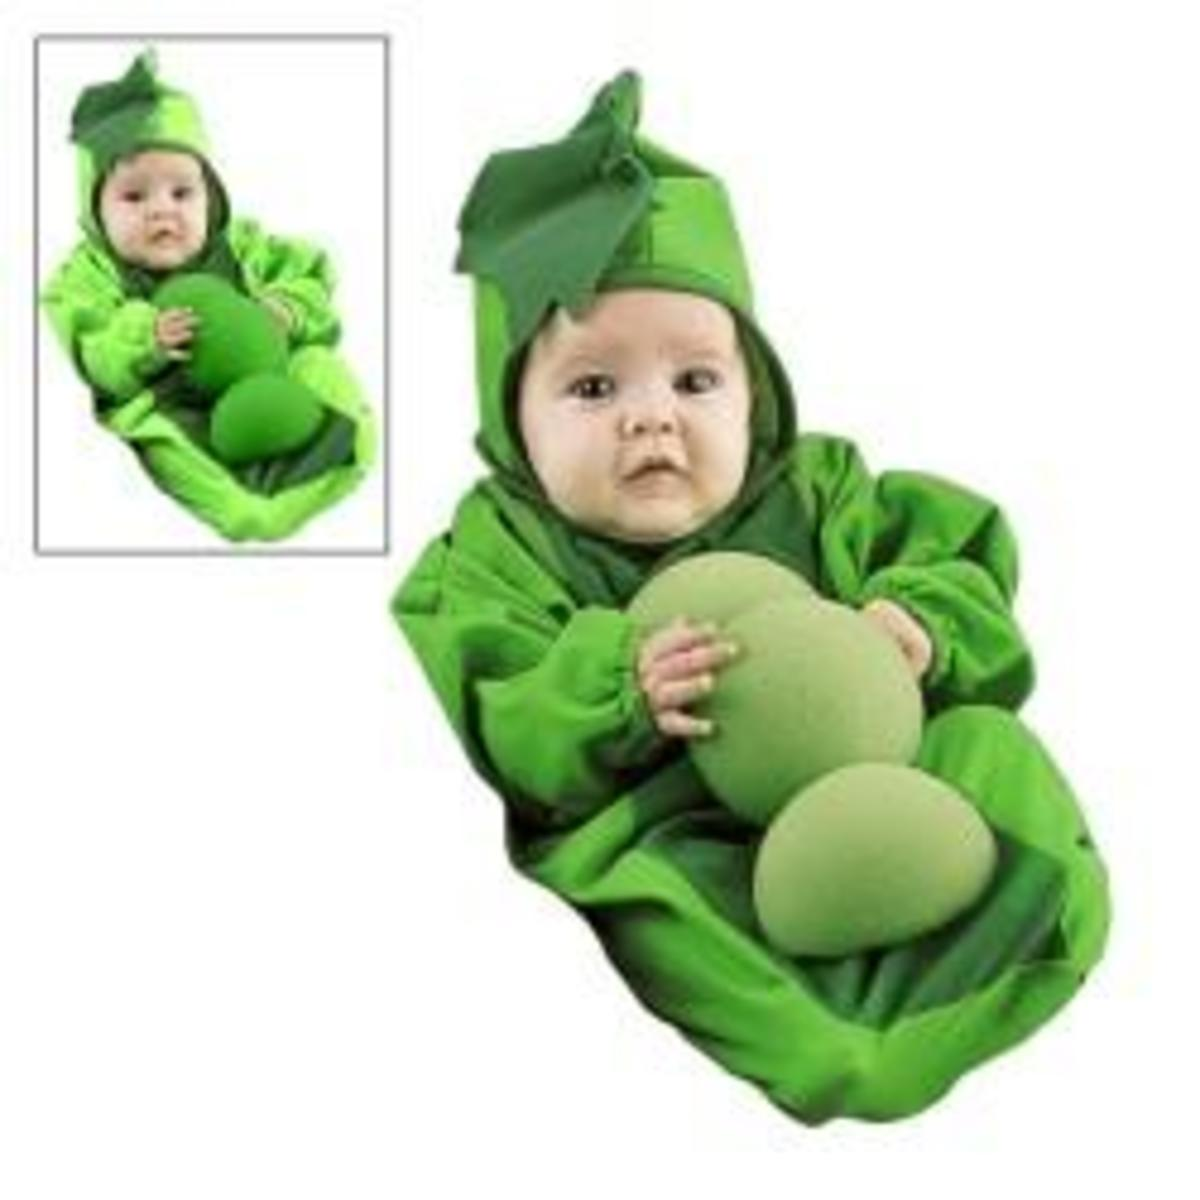 green-giant-halloween-costume